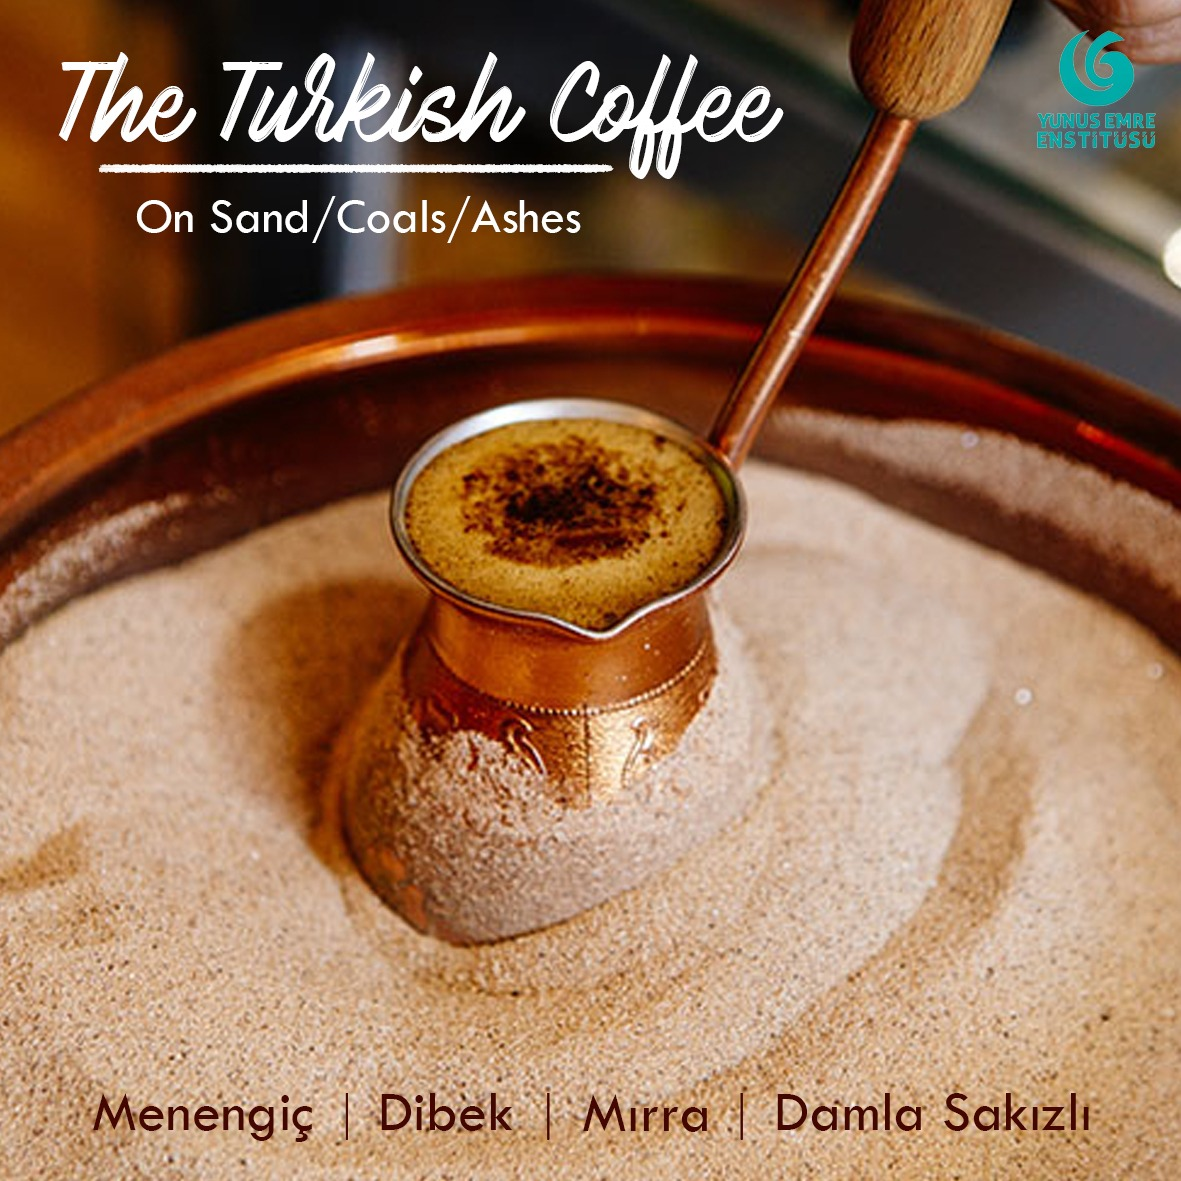 Turkish coffee is an essential element in every gathering. If you visit Turkey, enjoy Turkish coffee without hesitating. It will definitely make you come back for more.  #Turkey #Pakistan #Turkishcoffee #coffee #pakturk #culture #beverages #turkishculture #turkish #coffeonsandpic.twitter.com/iPzN2SyFDV